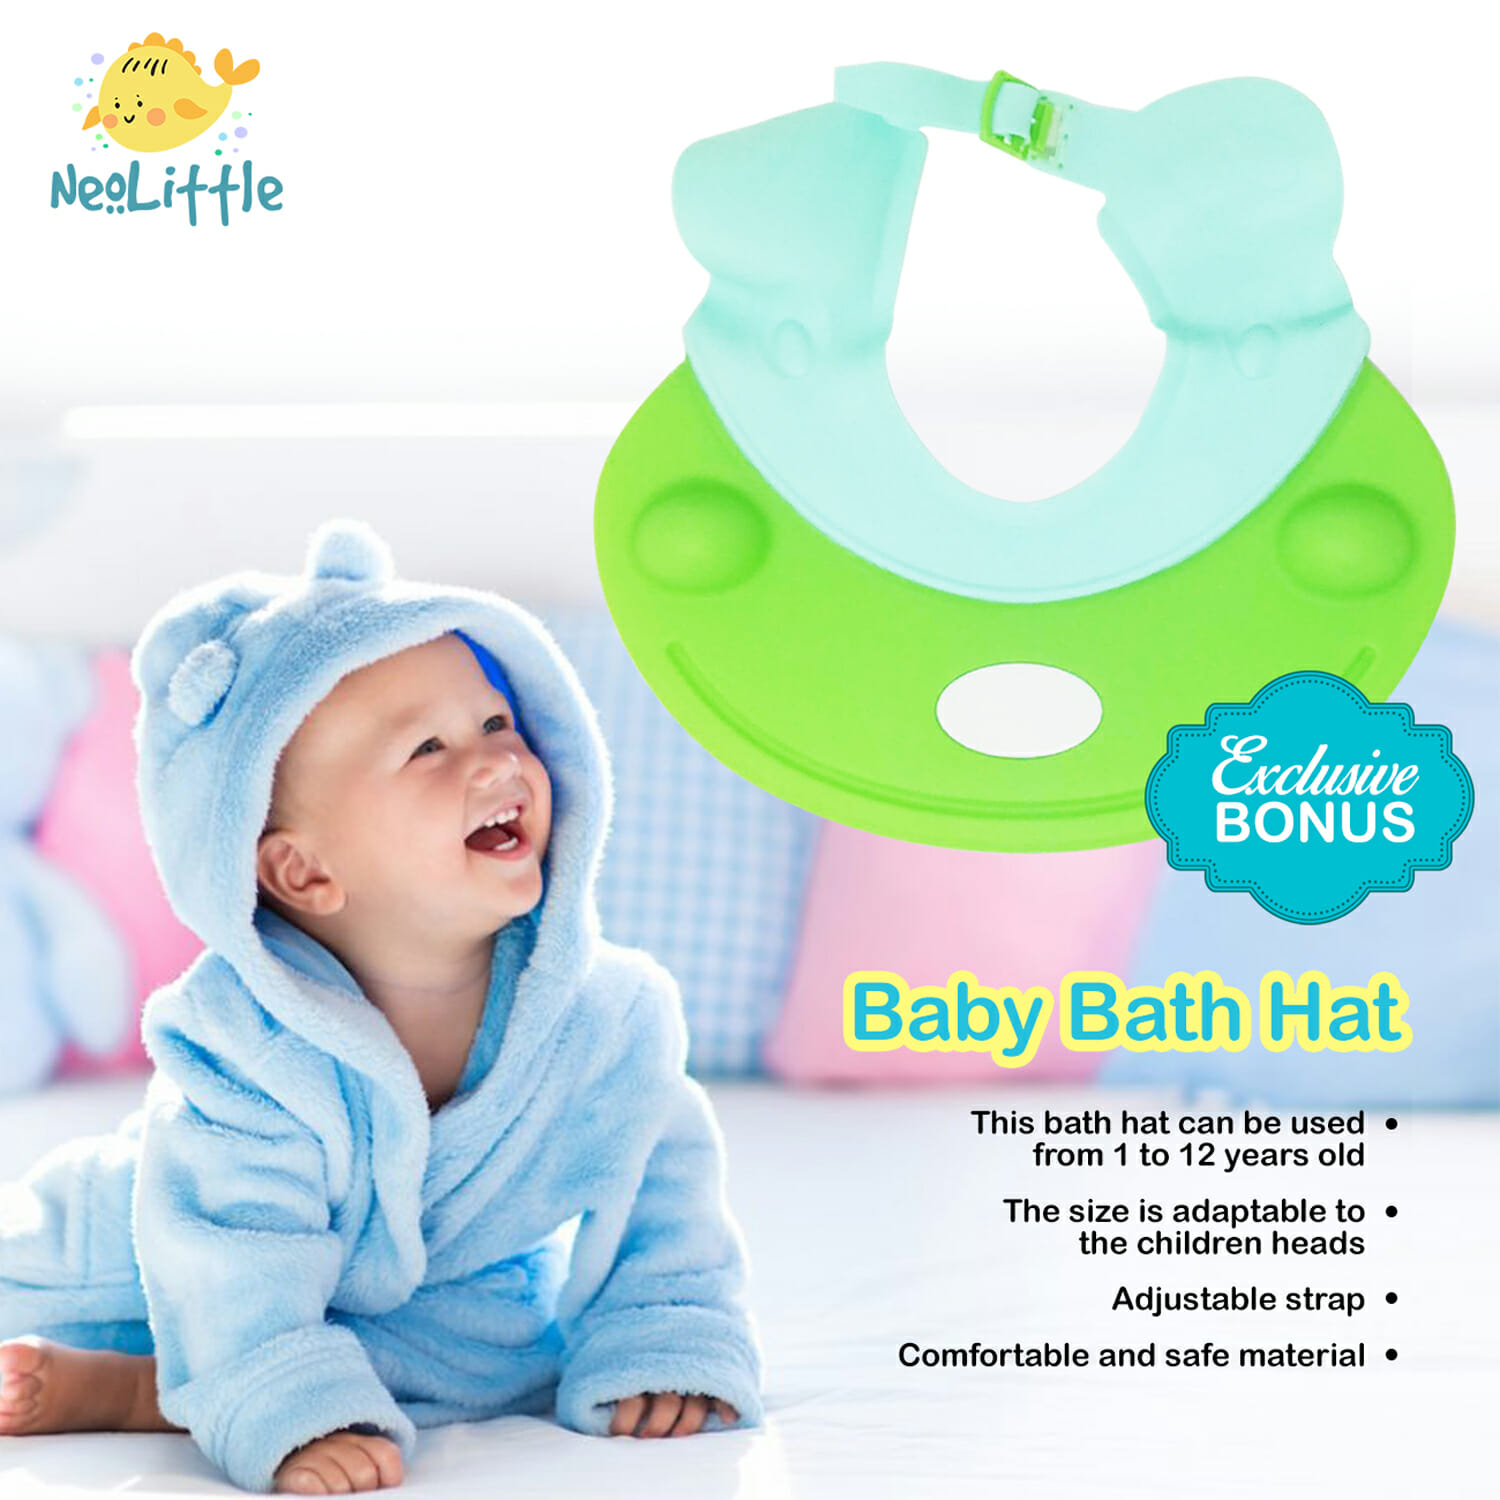 knee pad for bathing baby - 7